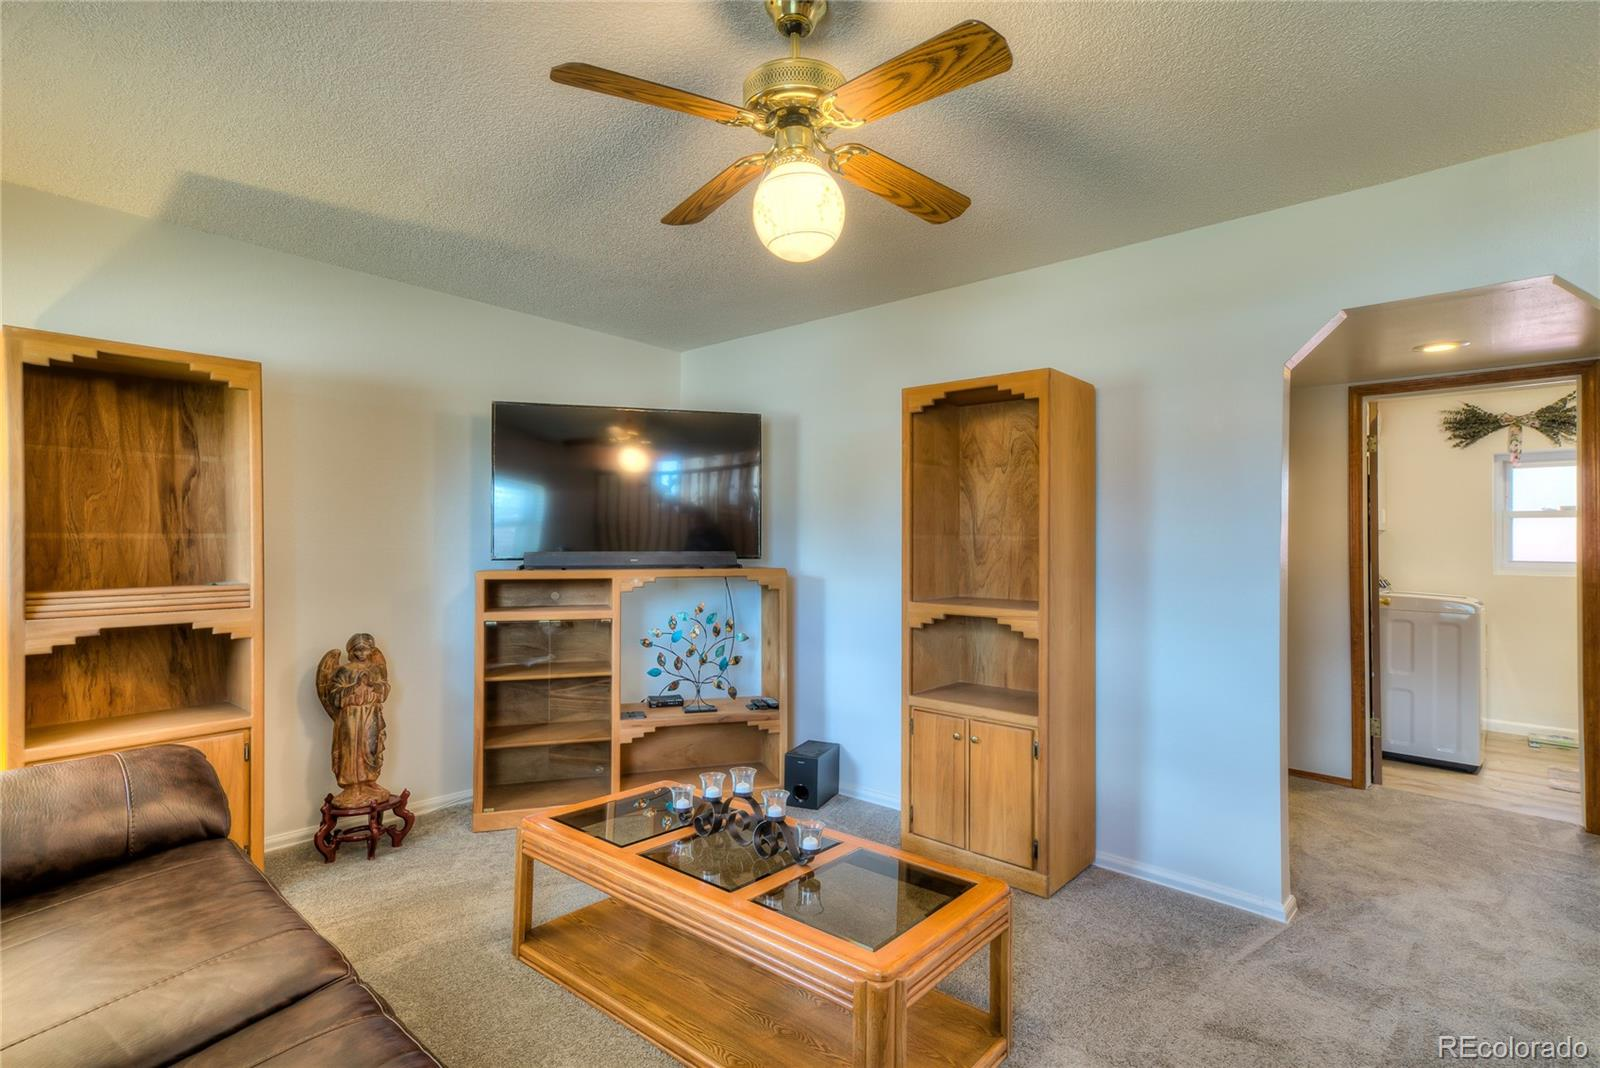 MLS# 2811379 - 19 - 9645 W David Avenue, Littleton, CO 80128